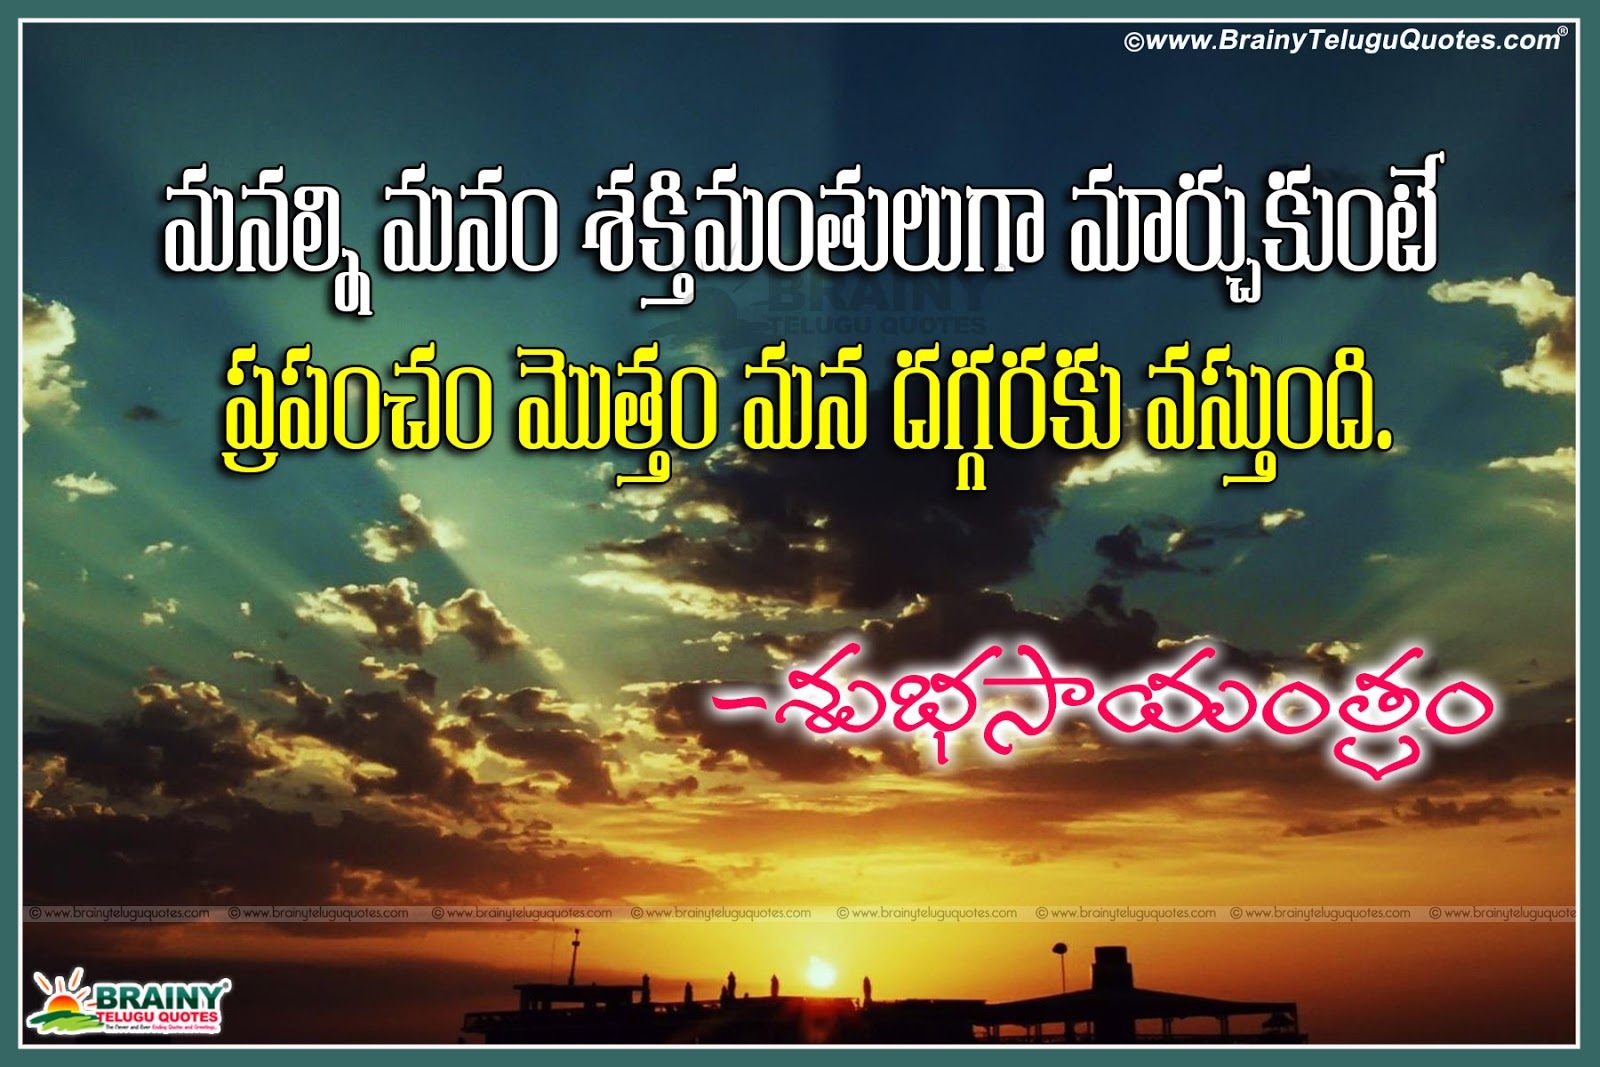 All time best telugu good evening messages pictures quotes wishes here is a atelugu all time best good evening greetings and quotes for alltelugu good evening love messagestelugu good evening life quotes and inspiring m4hsunfo